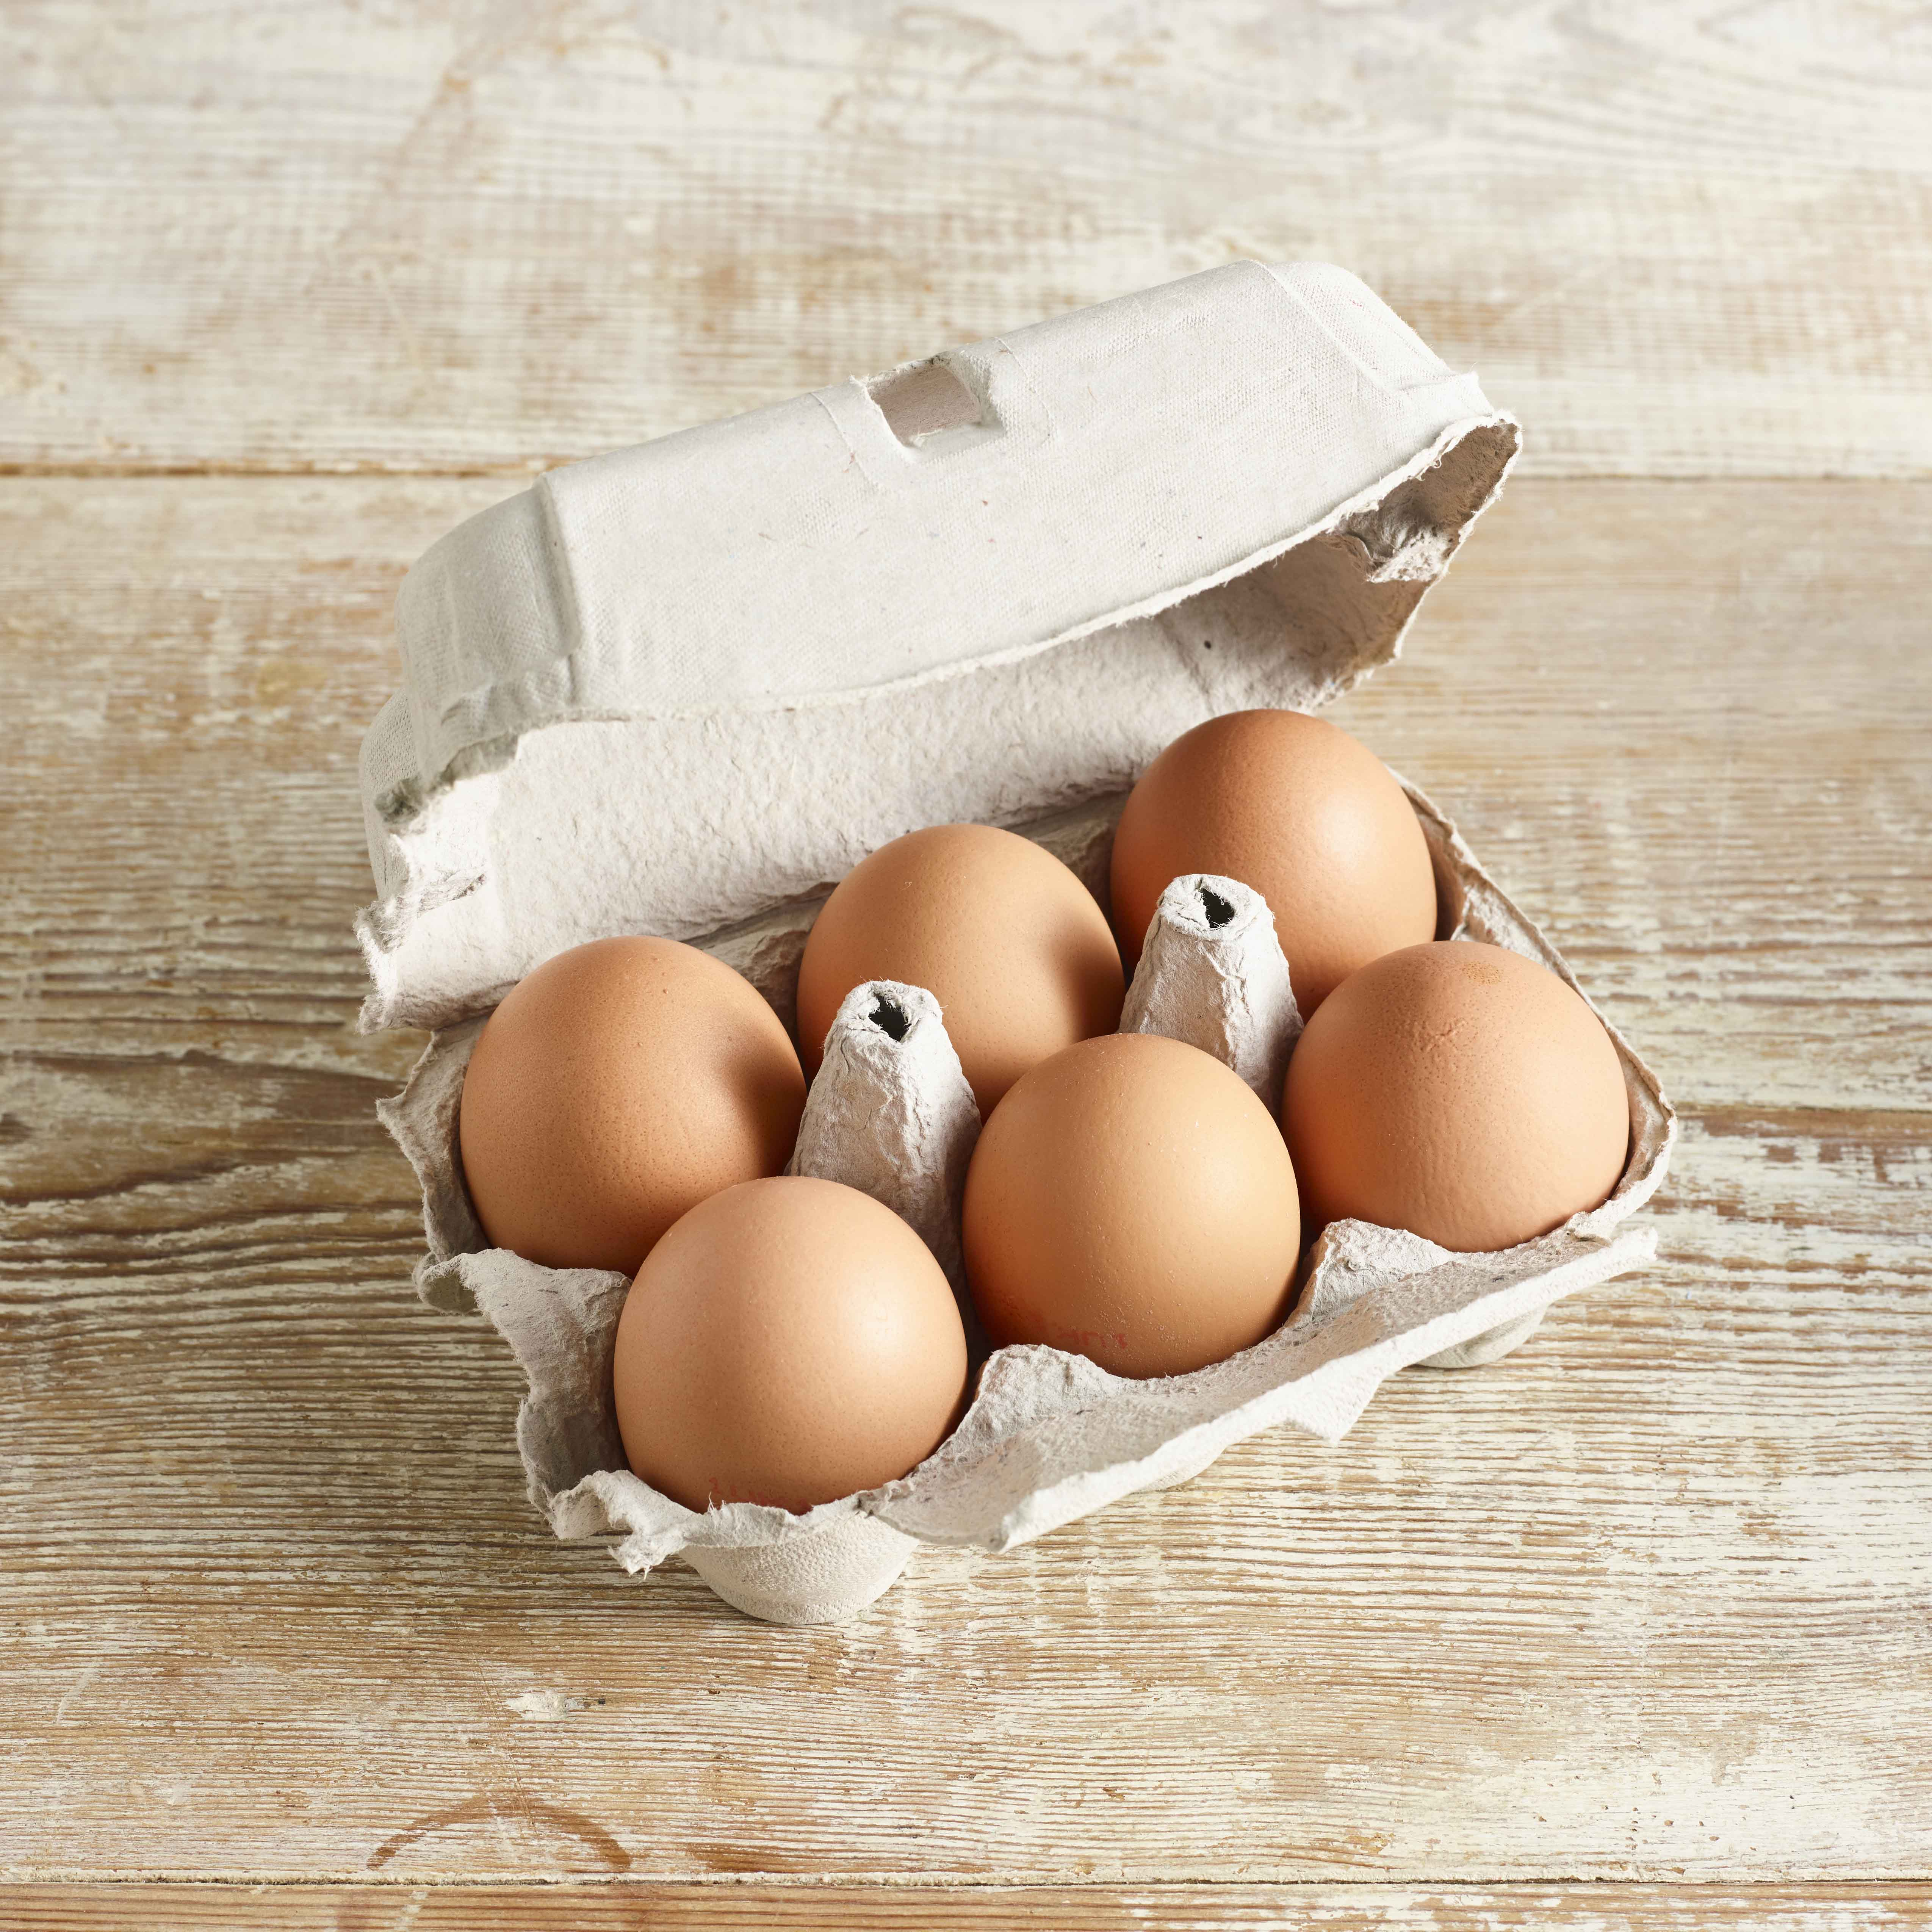 The Birds and The Bees Large Free Range Eggs, 6 Pack